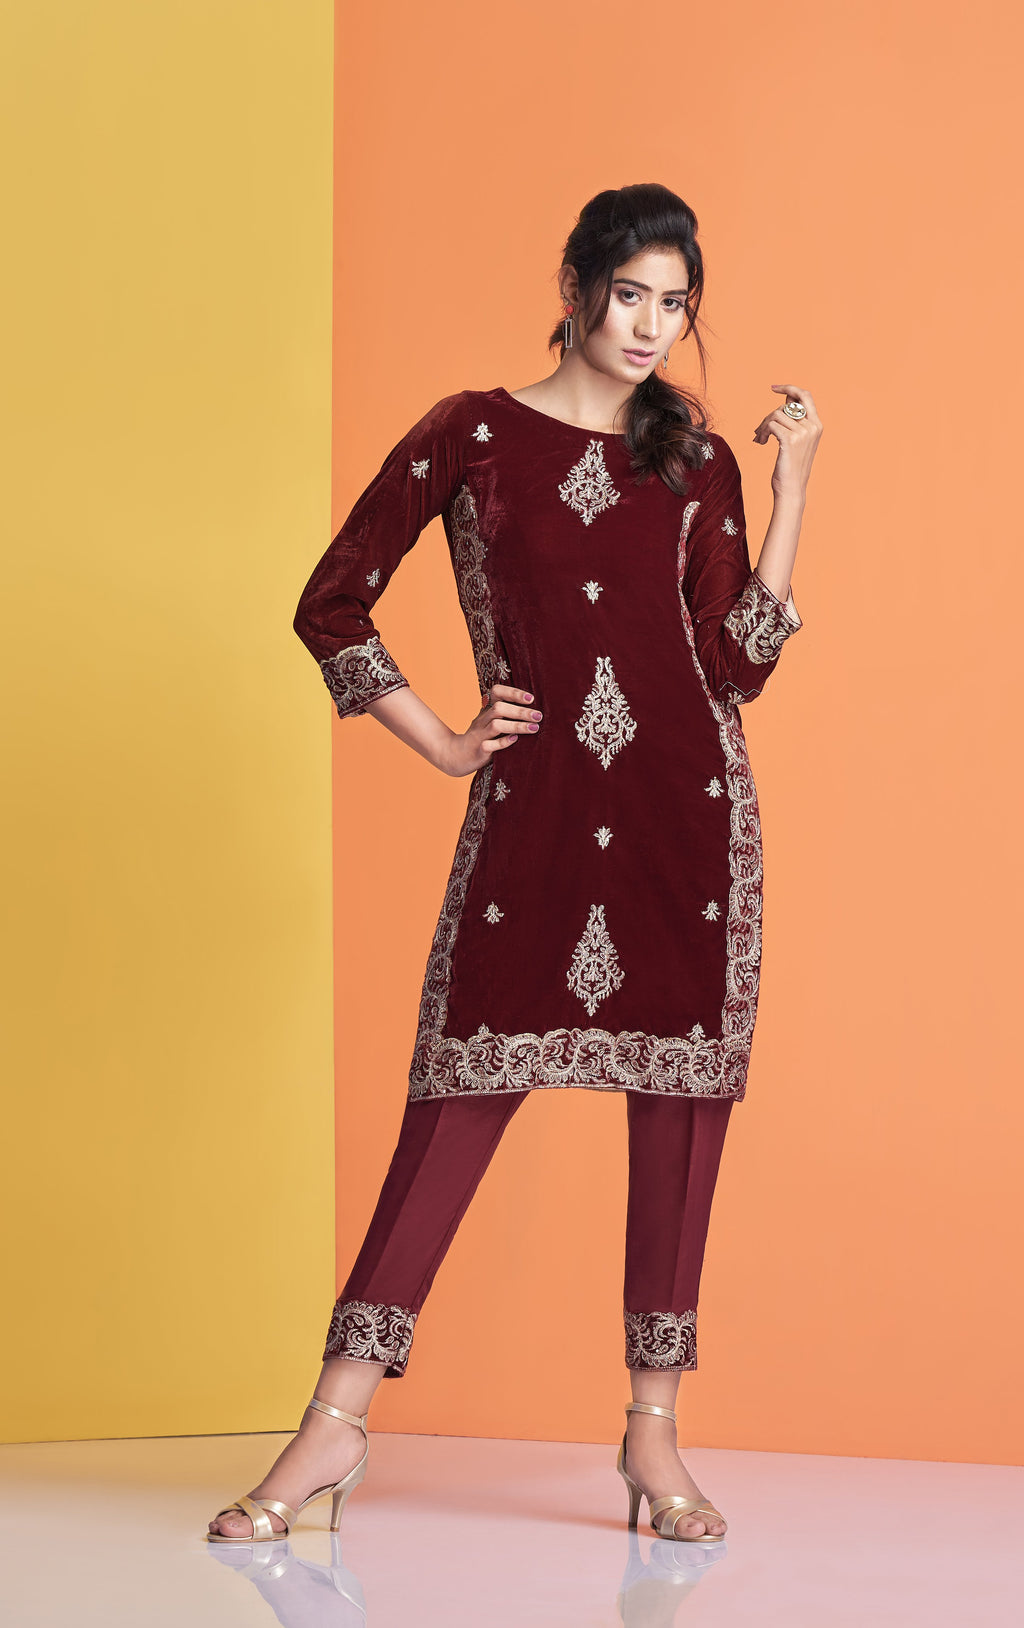 velvet shirt for women, pakistani formal dresses for women